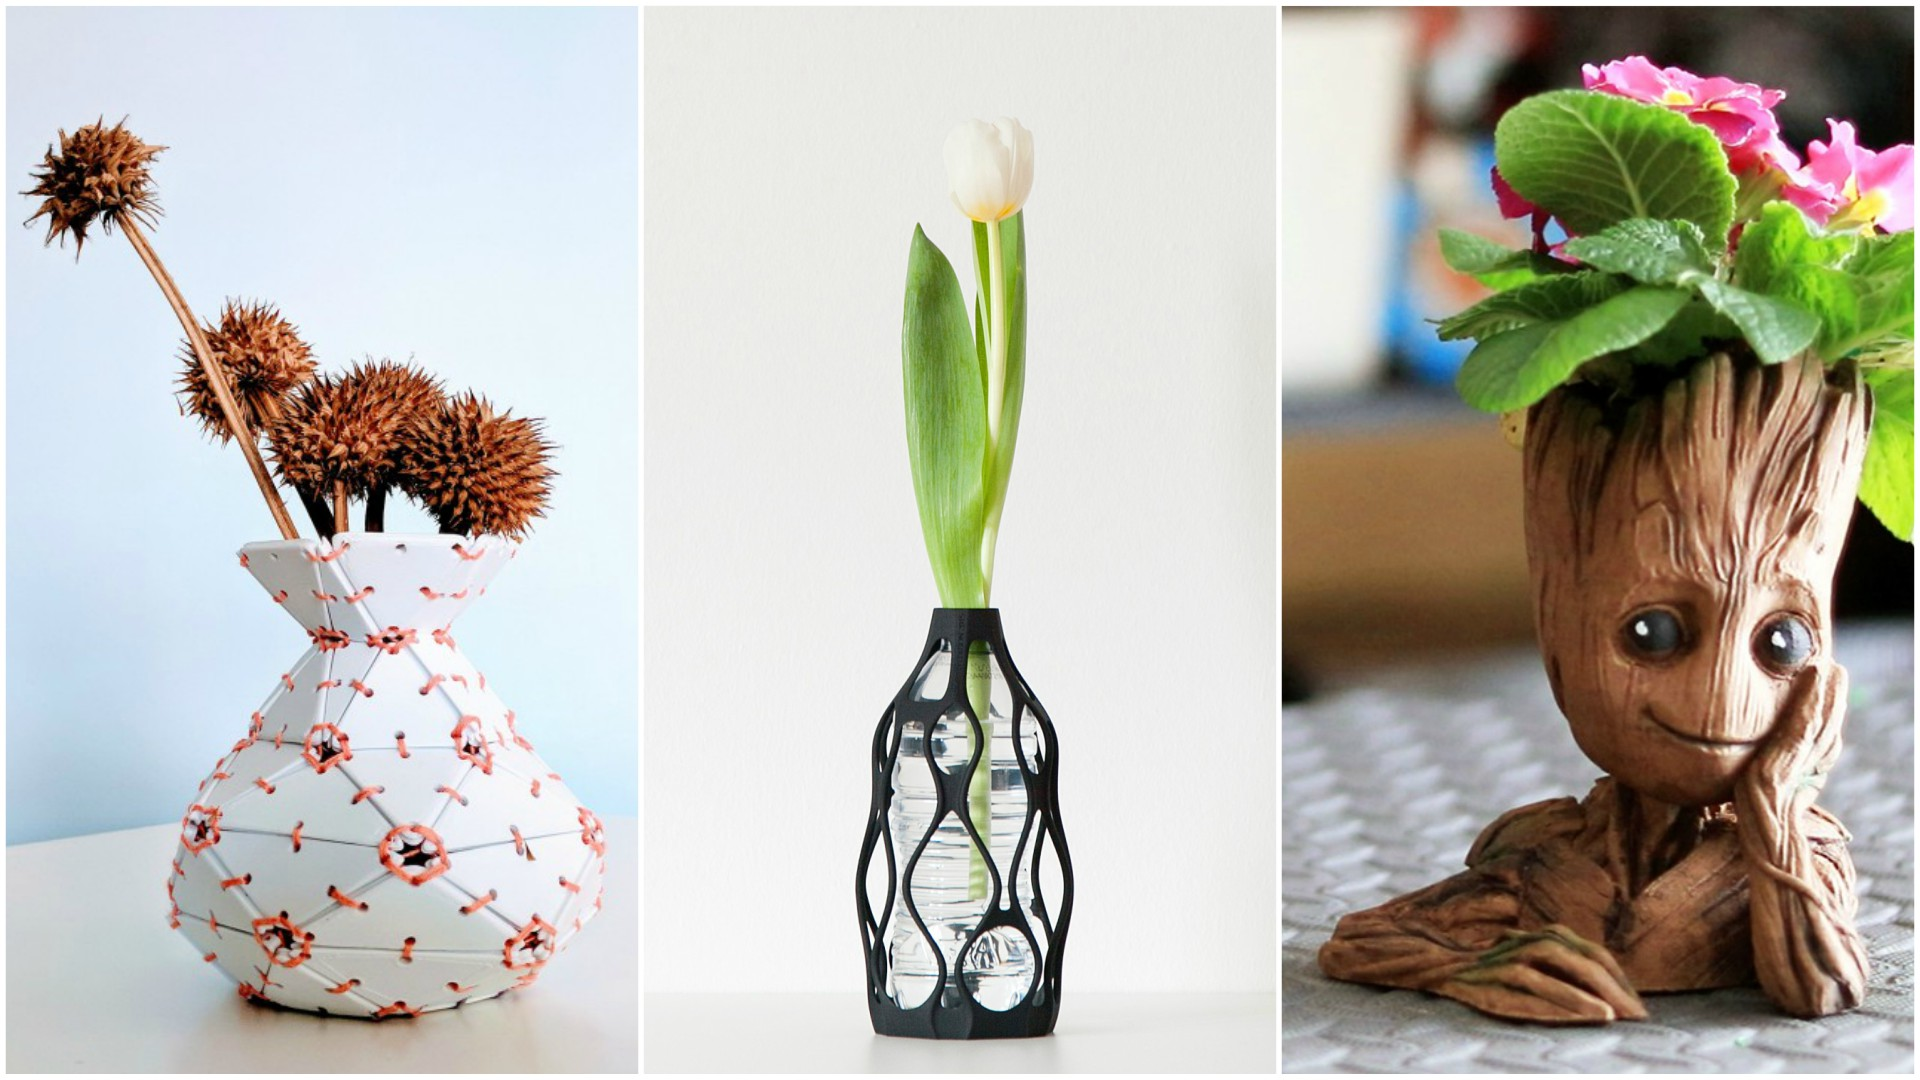 3D Printed Vase: 10 Best Curated Models to 3D Print | All3DP